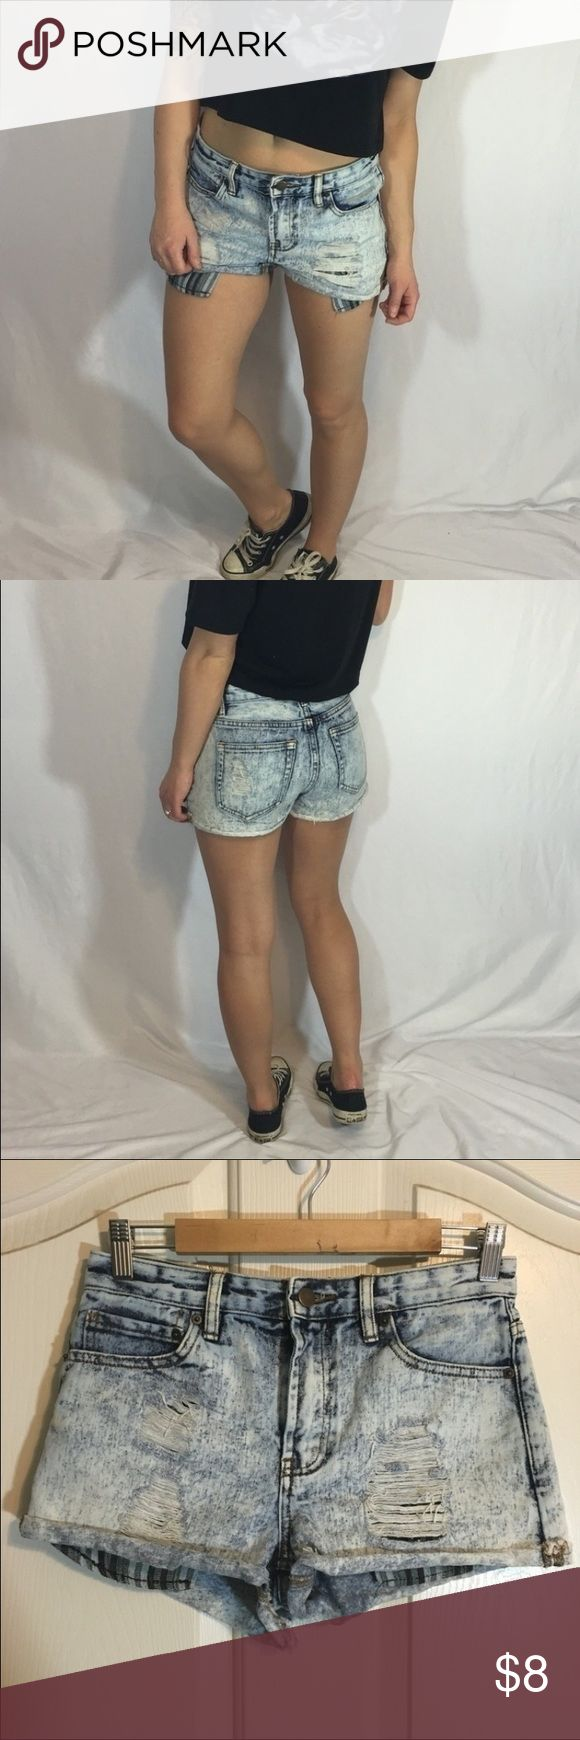 High Waisted Forever 21 Acid Wash Shorts Forever 21 acid wash denim high waisted shorts with cuff. Destroyed :: grungy vibe.  Gently worn, in good condition. Size 26. (Fits like a 2) Forever 21 Shorts Jean Shorts